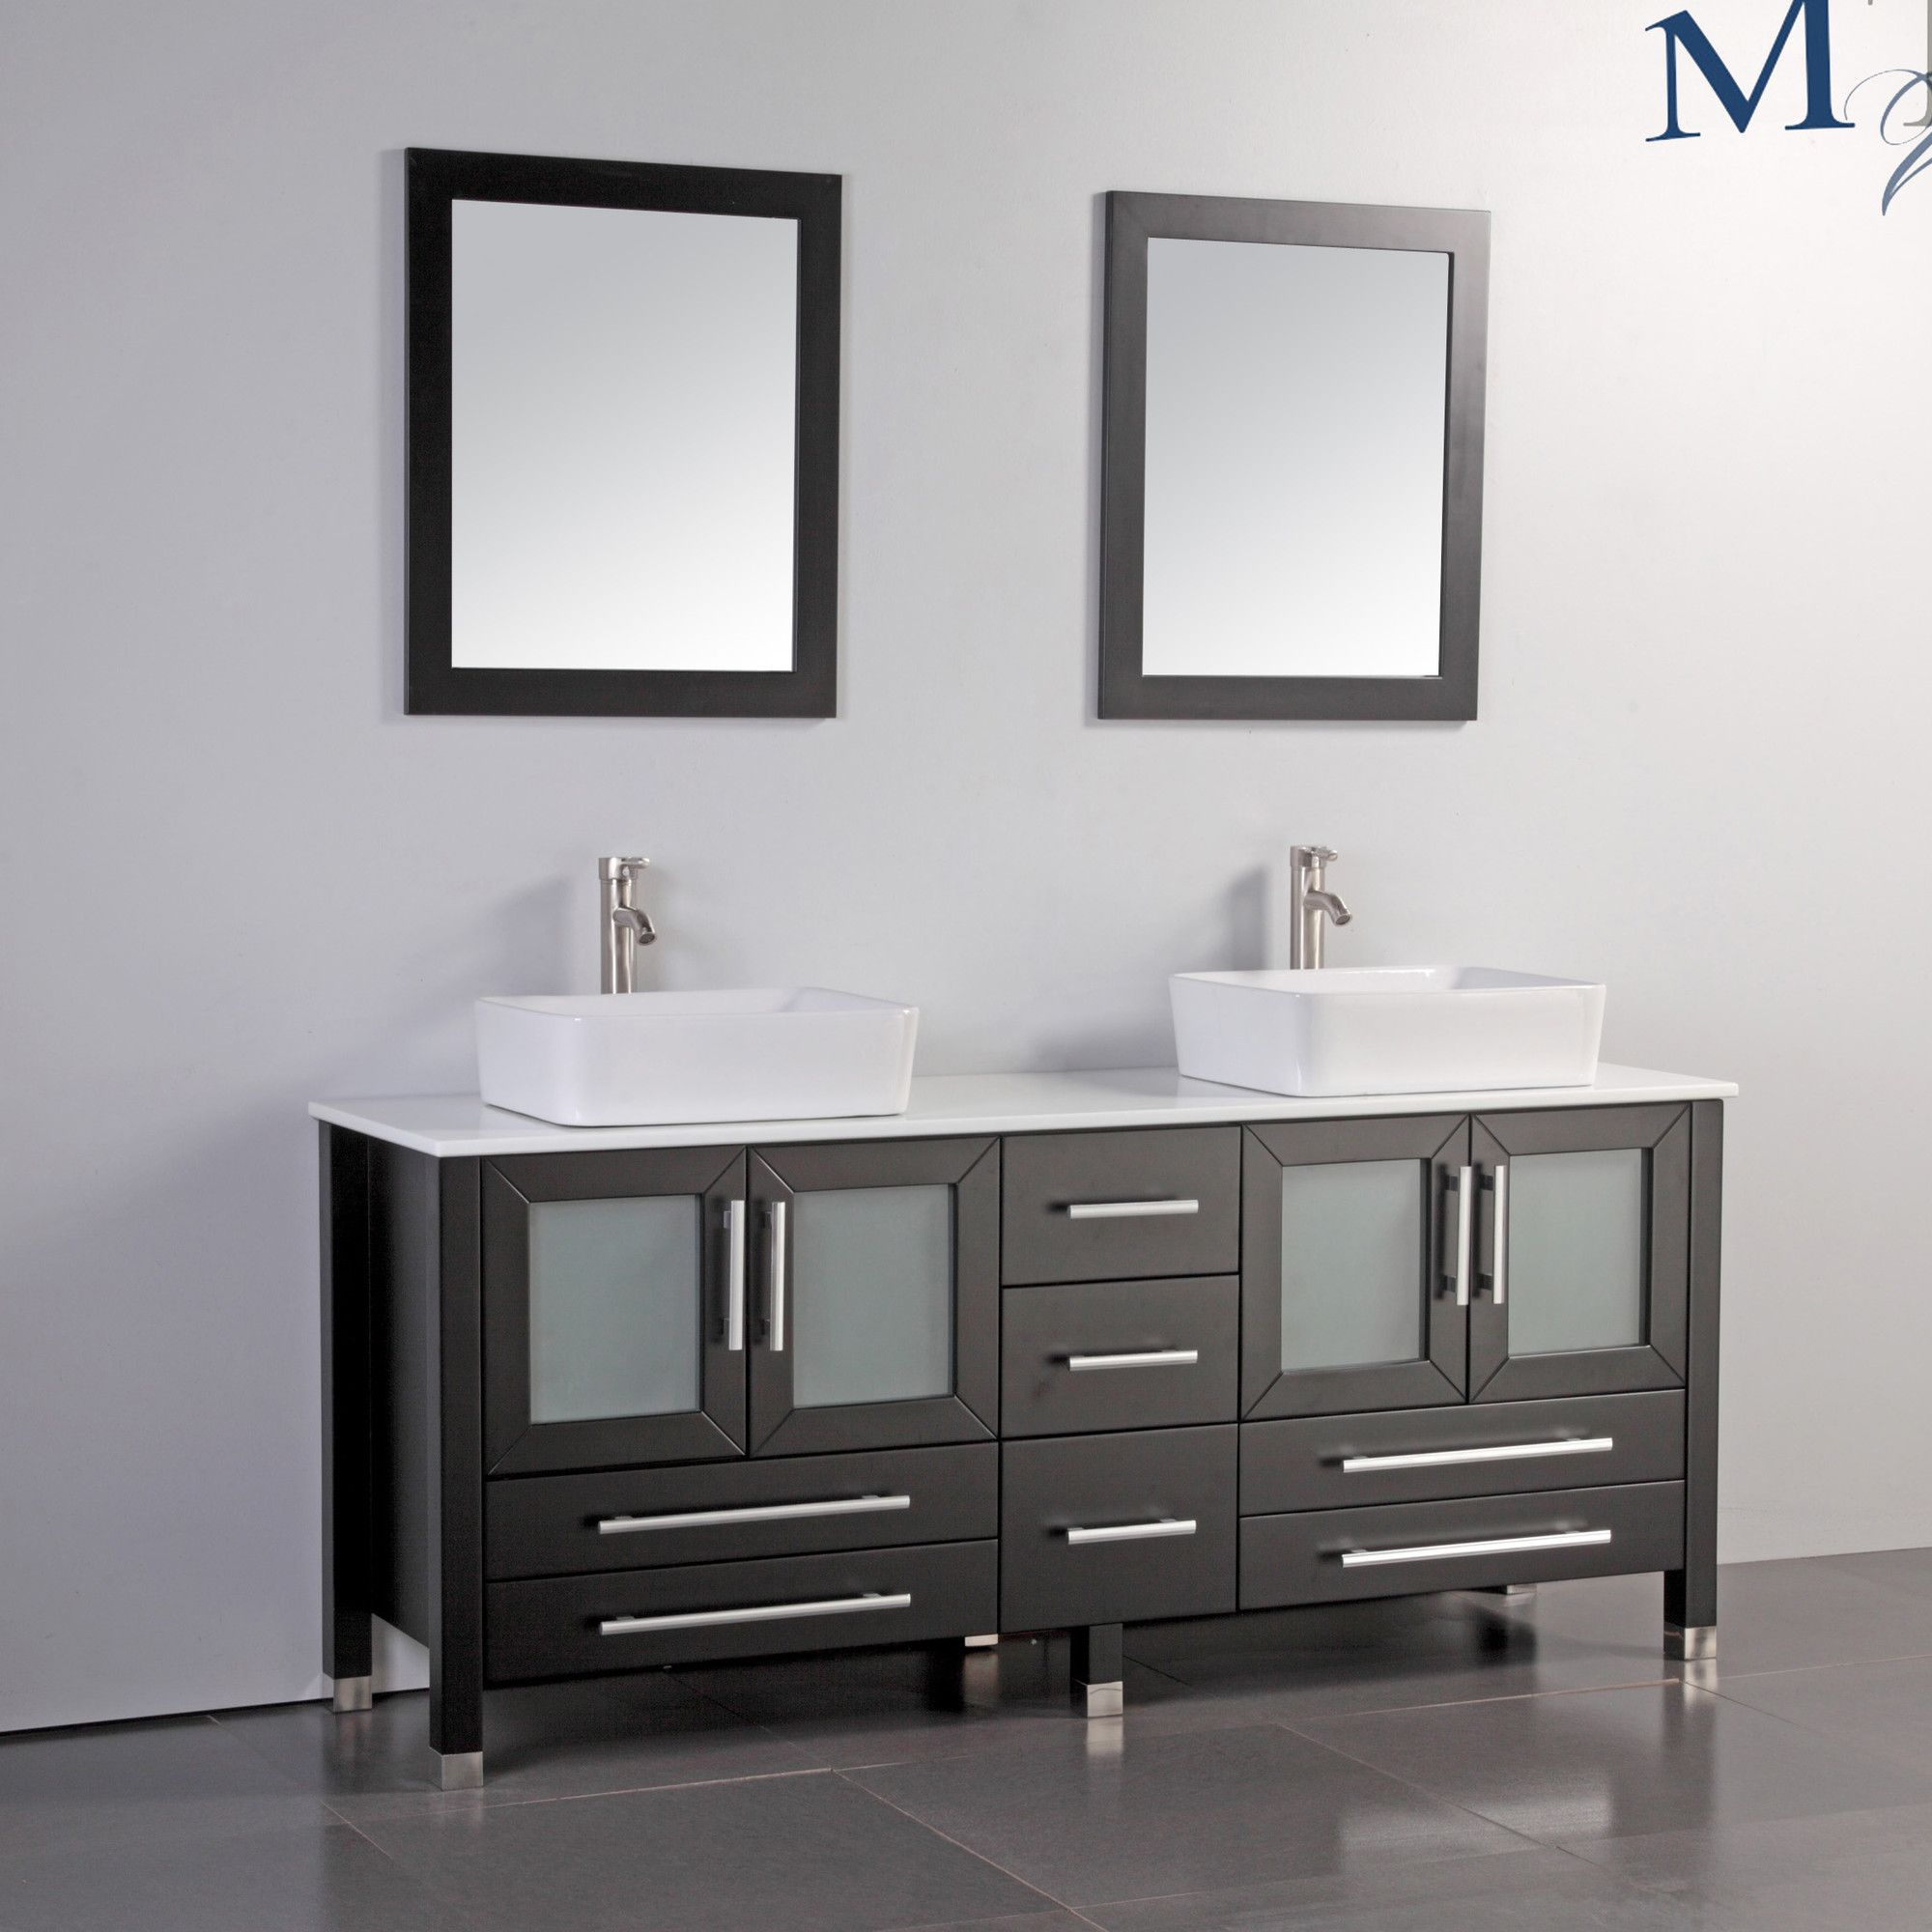 Wayfair Bathroom Vanity >> Malta 71 Double Sink Bathroom Vanity Set With Mirror